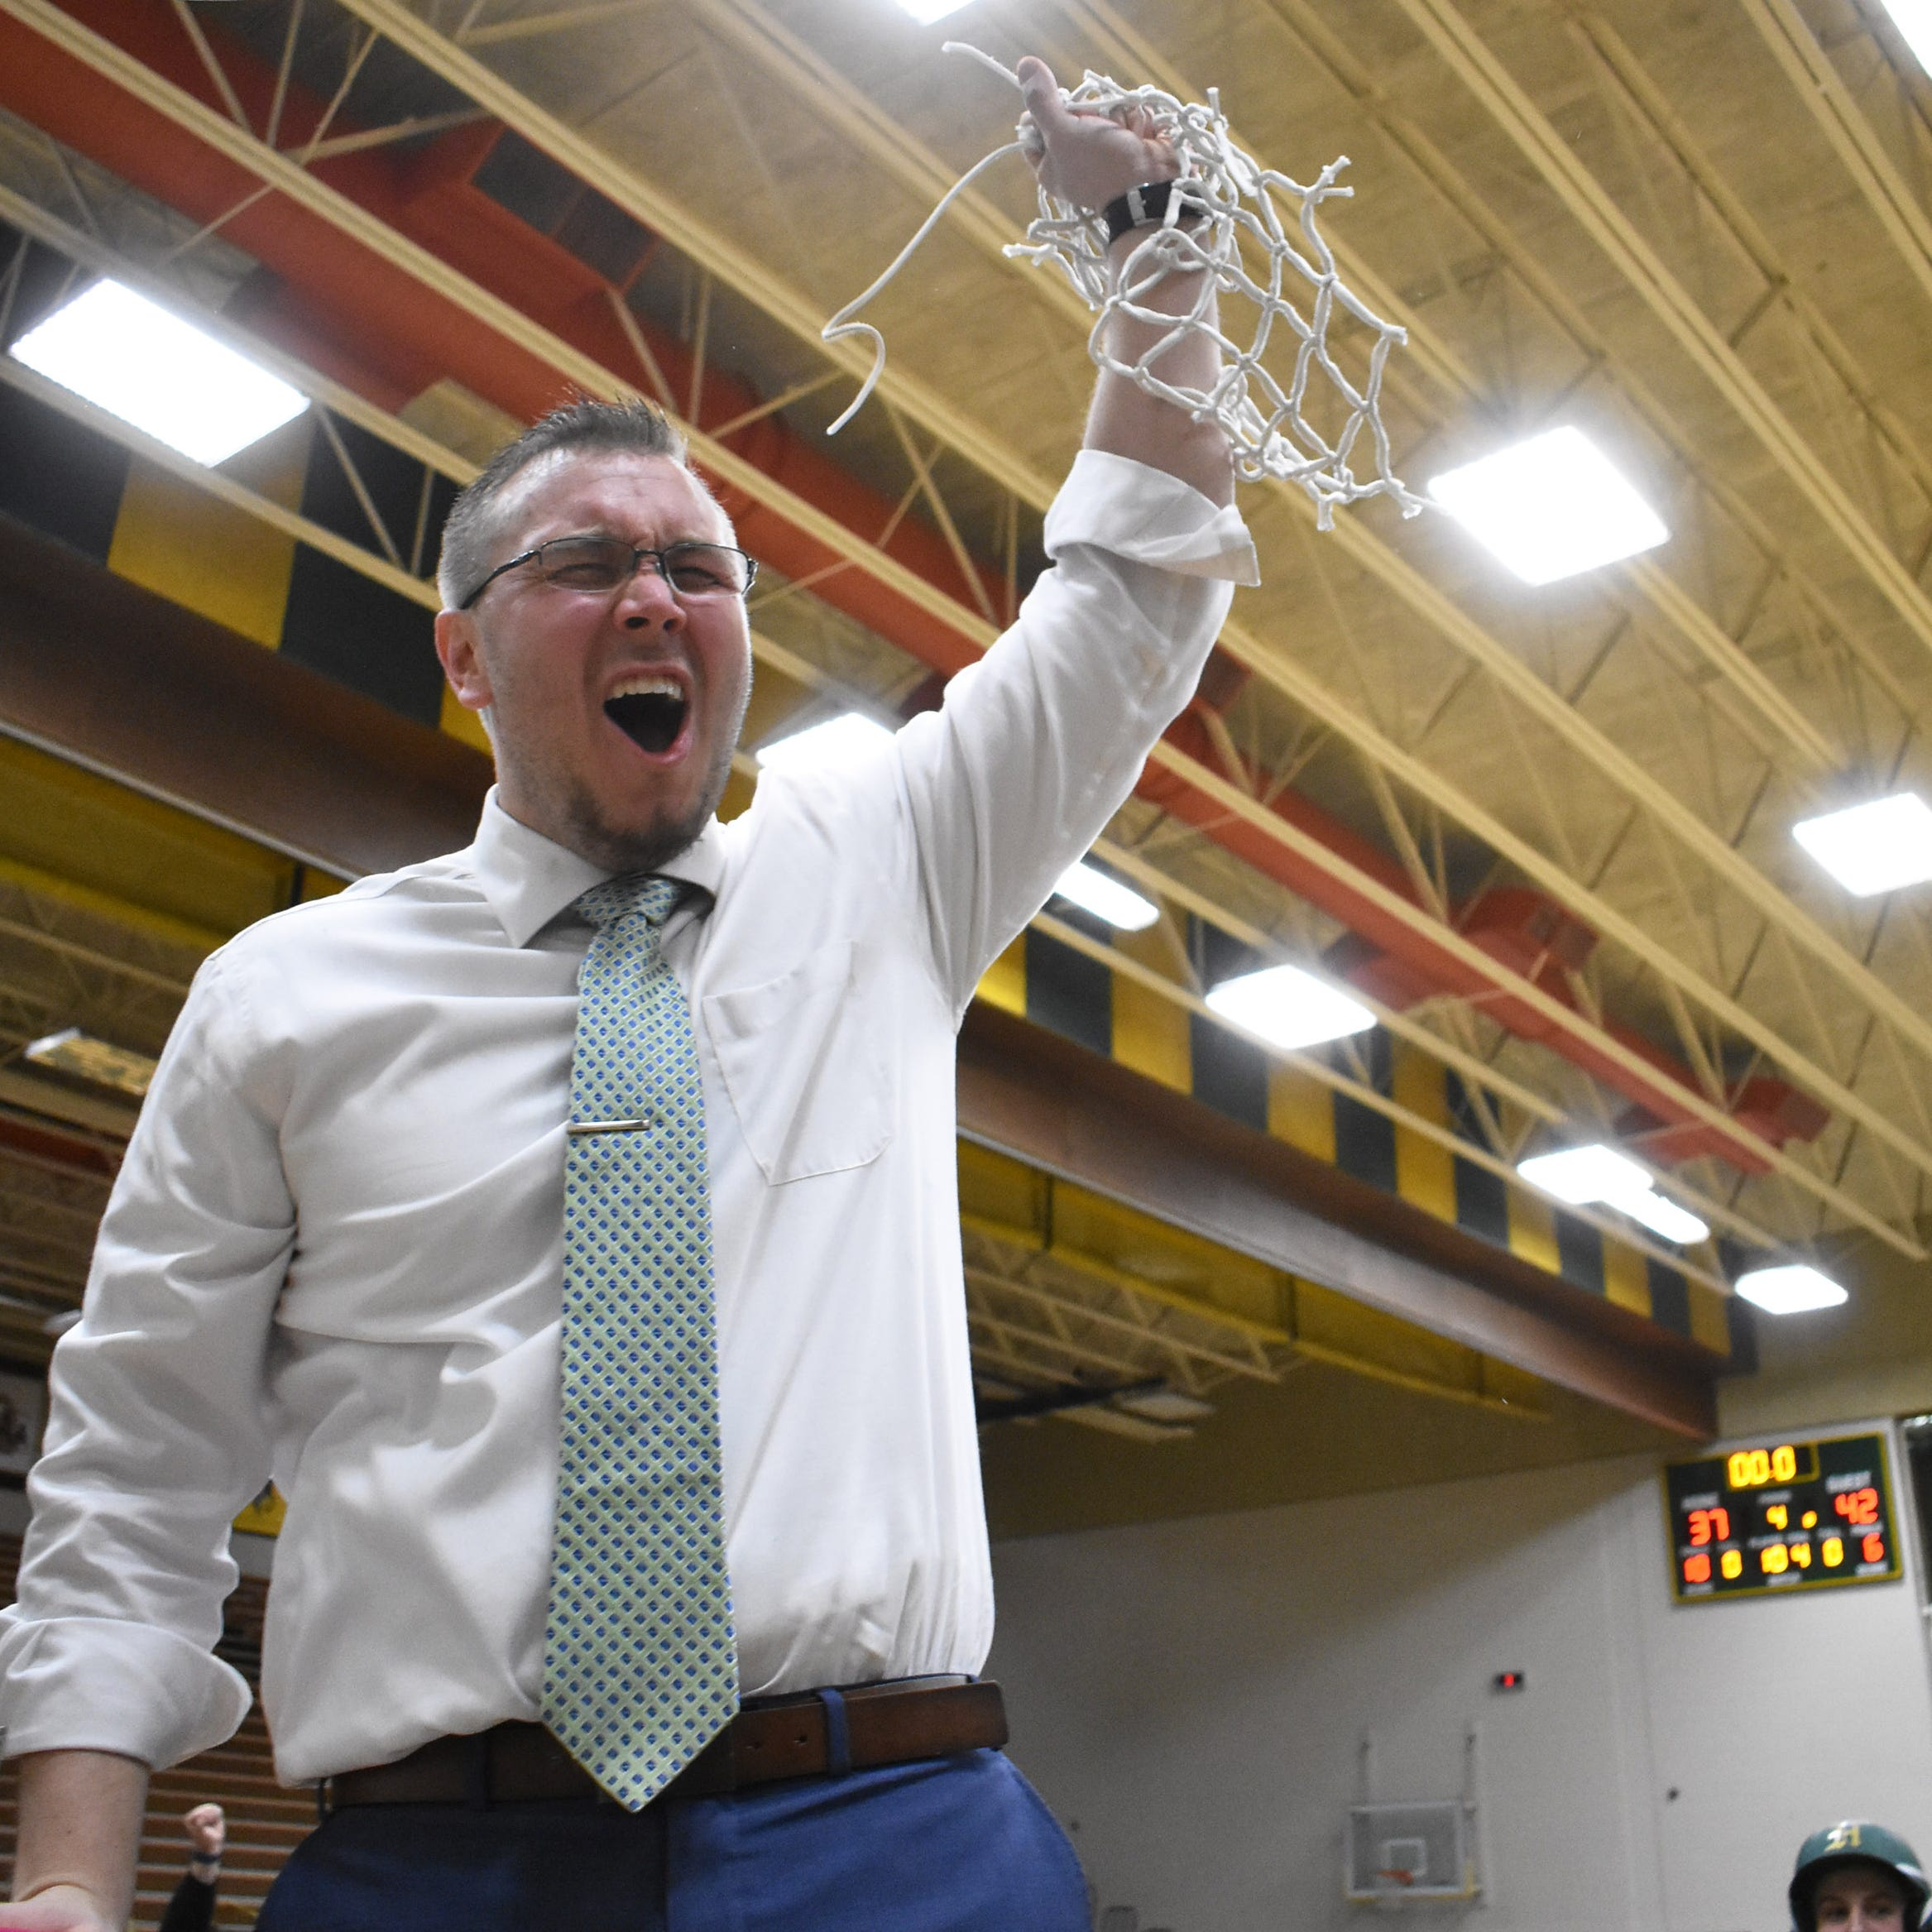 Inspired by 2014 team, Howell wins regional basketball championship